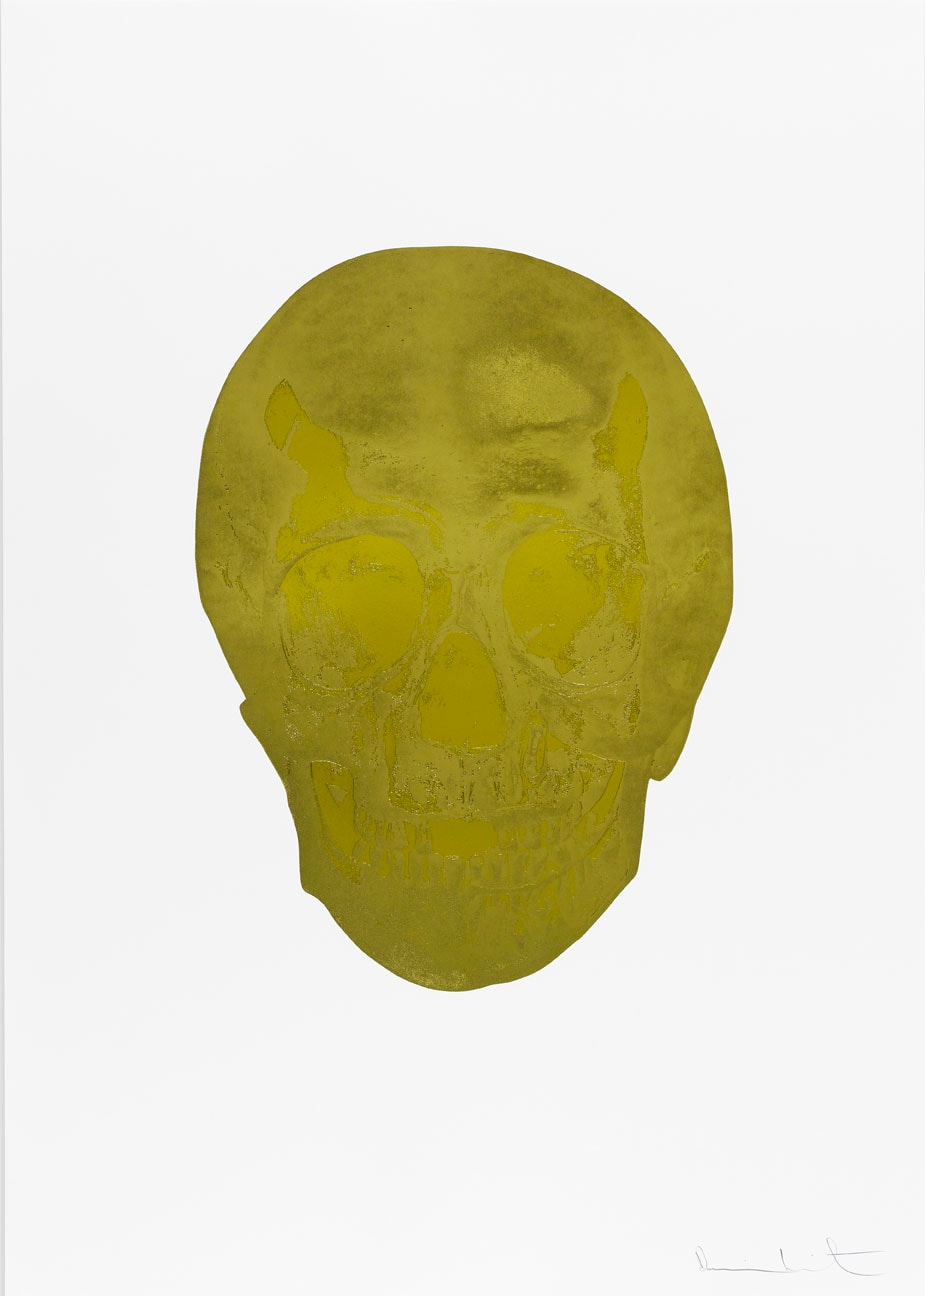 Damien Hirst Death Or Glory Sunset Gold/Oriental Gold Glorious Skull, 2011 2 colour foil block on 300gsm Arches 88 archival paper. Signed and numbered. Published by Paul Stolper and Other Criteria. White aluminium powder coated frame. 72 x 51 cm; Framed 76.8 x 55.8 cm OC8372 Edition of 2